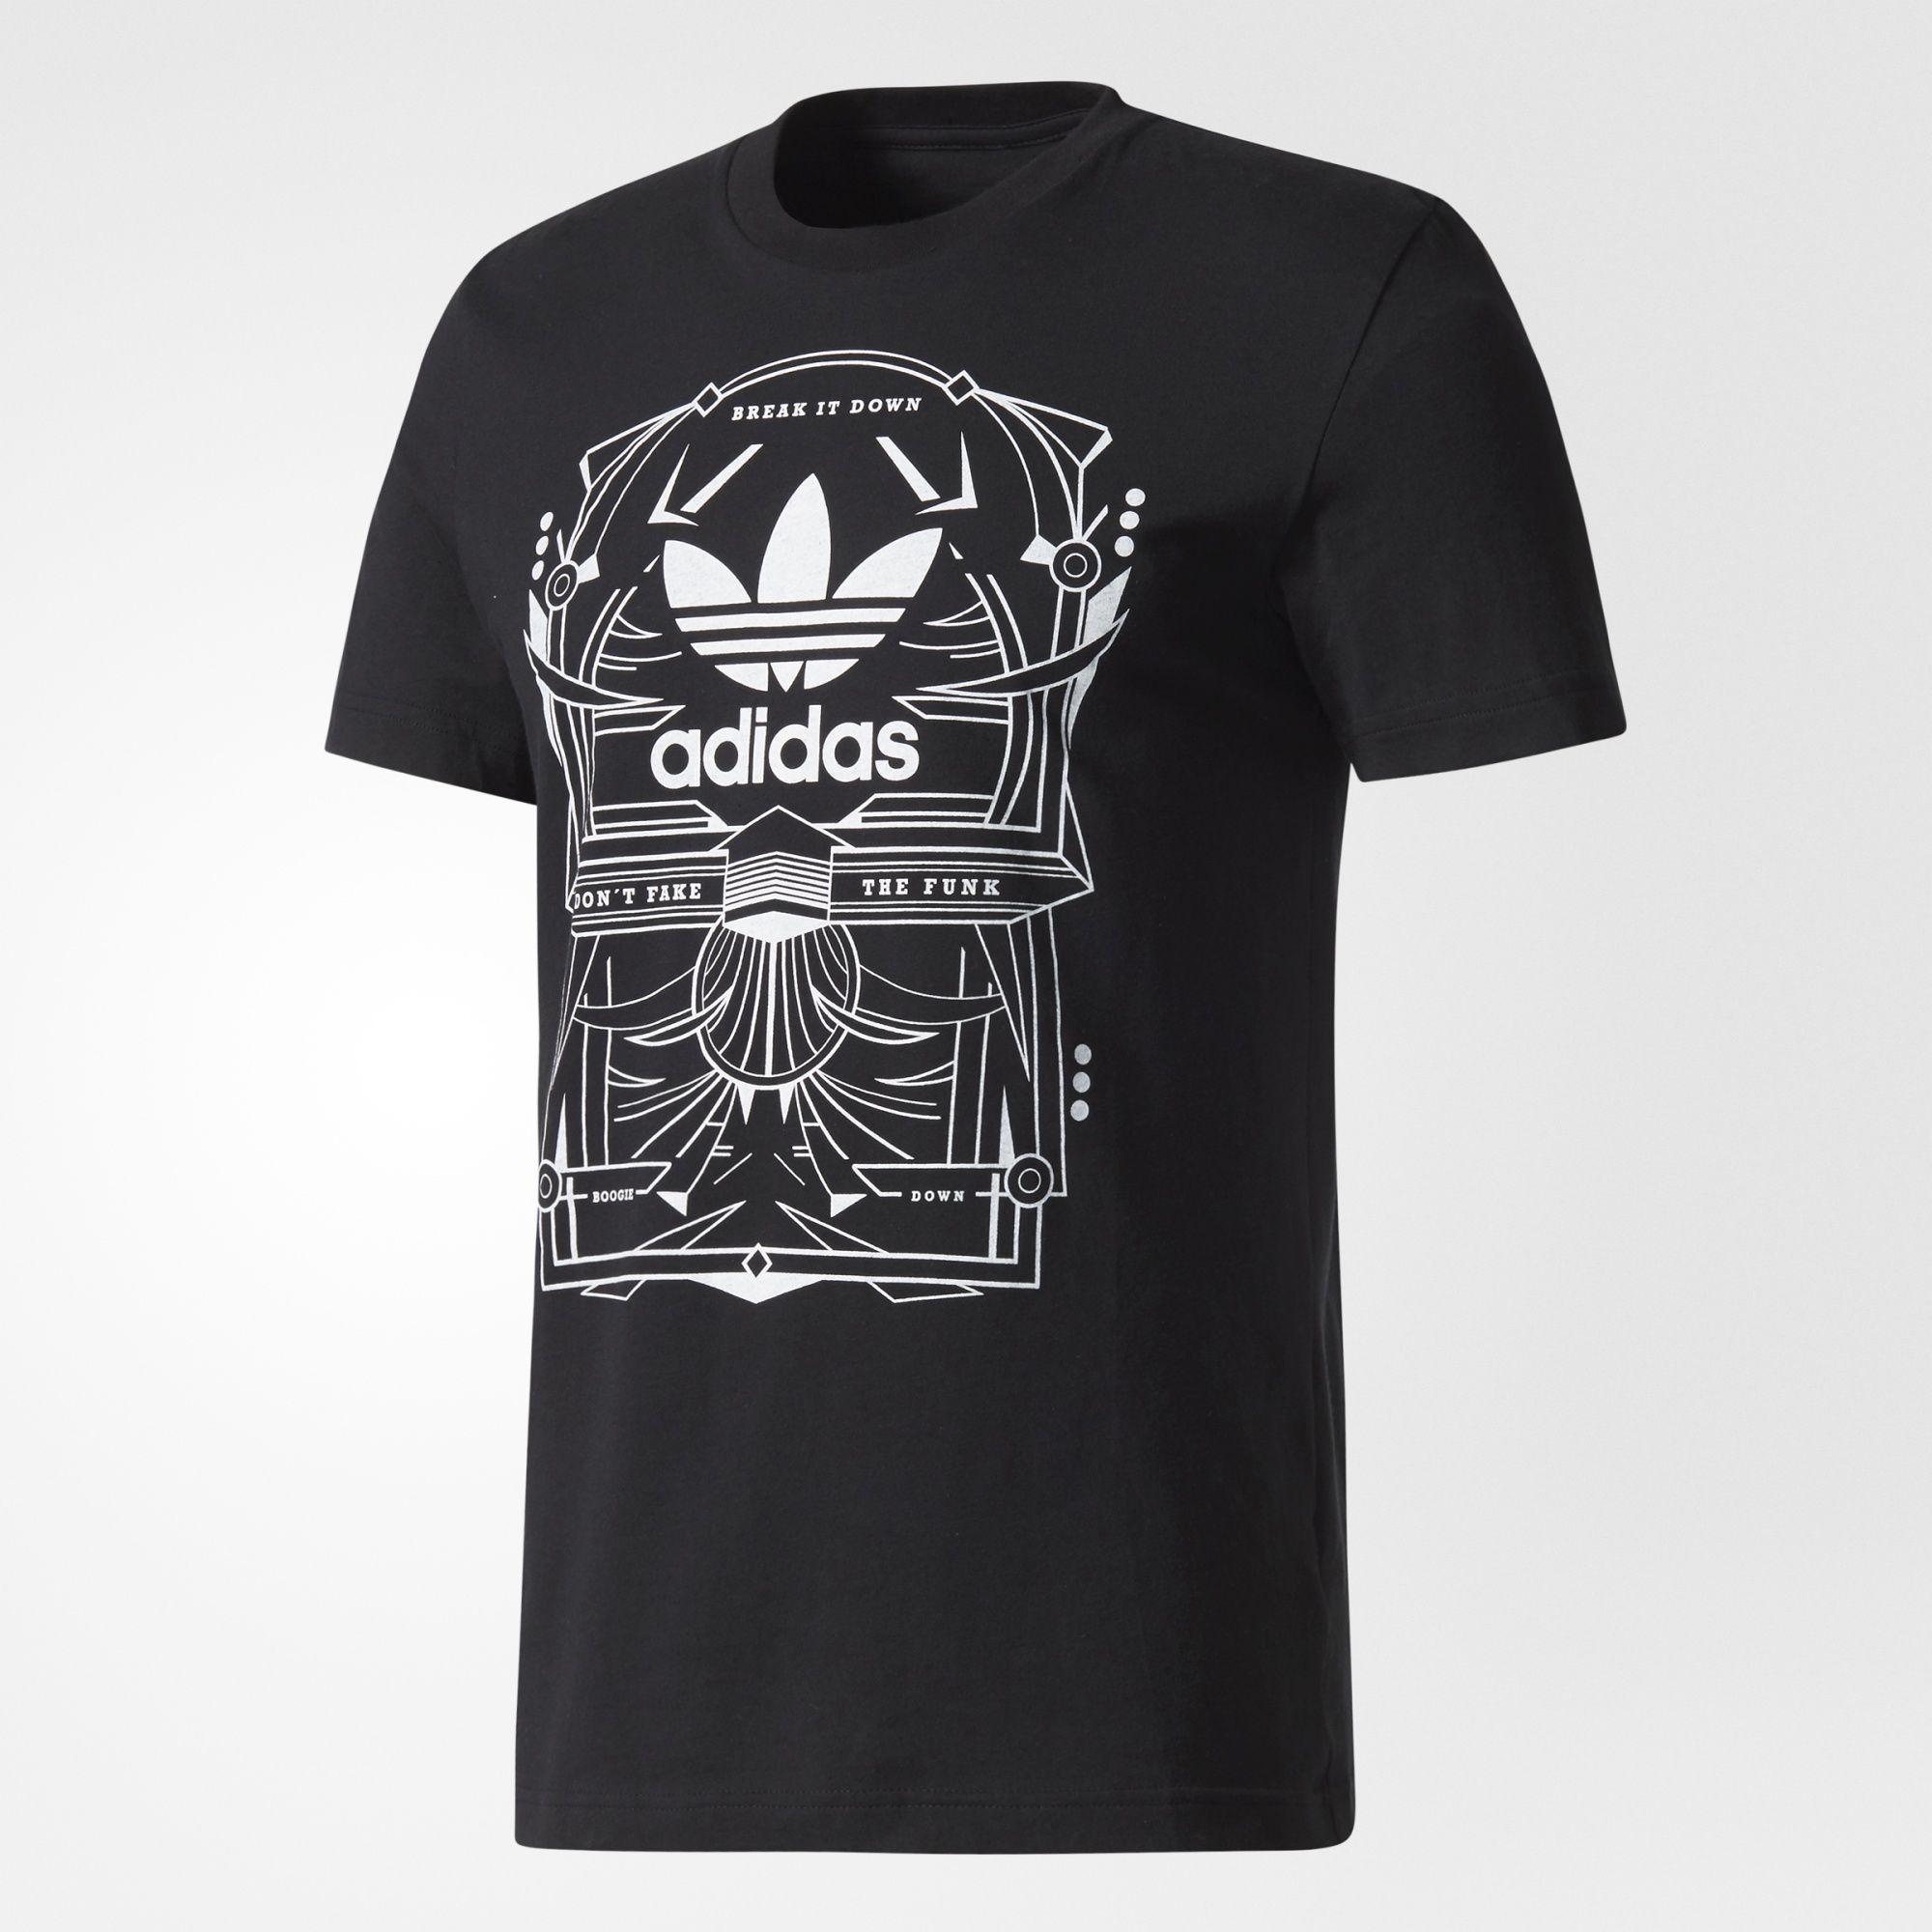 2e34c063c16 adidas Blackbird Paisley T-Shirt - Short-Sleeve (91 BRL) ❤ liked on  Polyvore featuring men s fashion